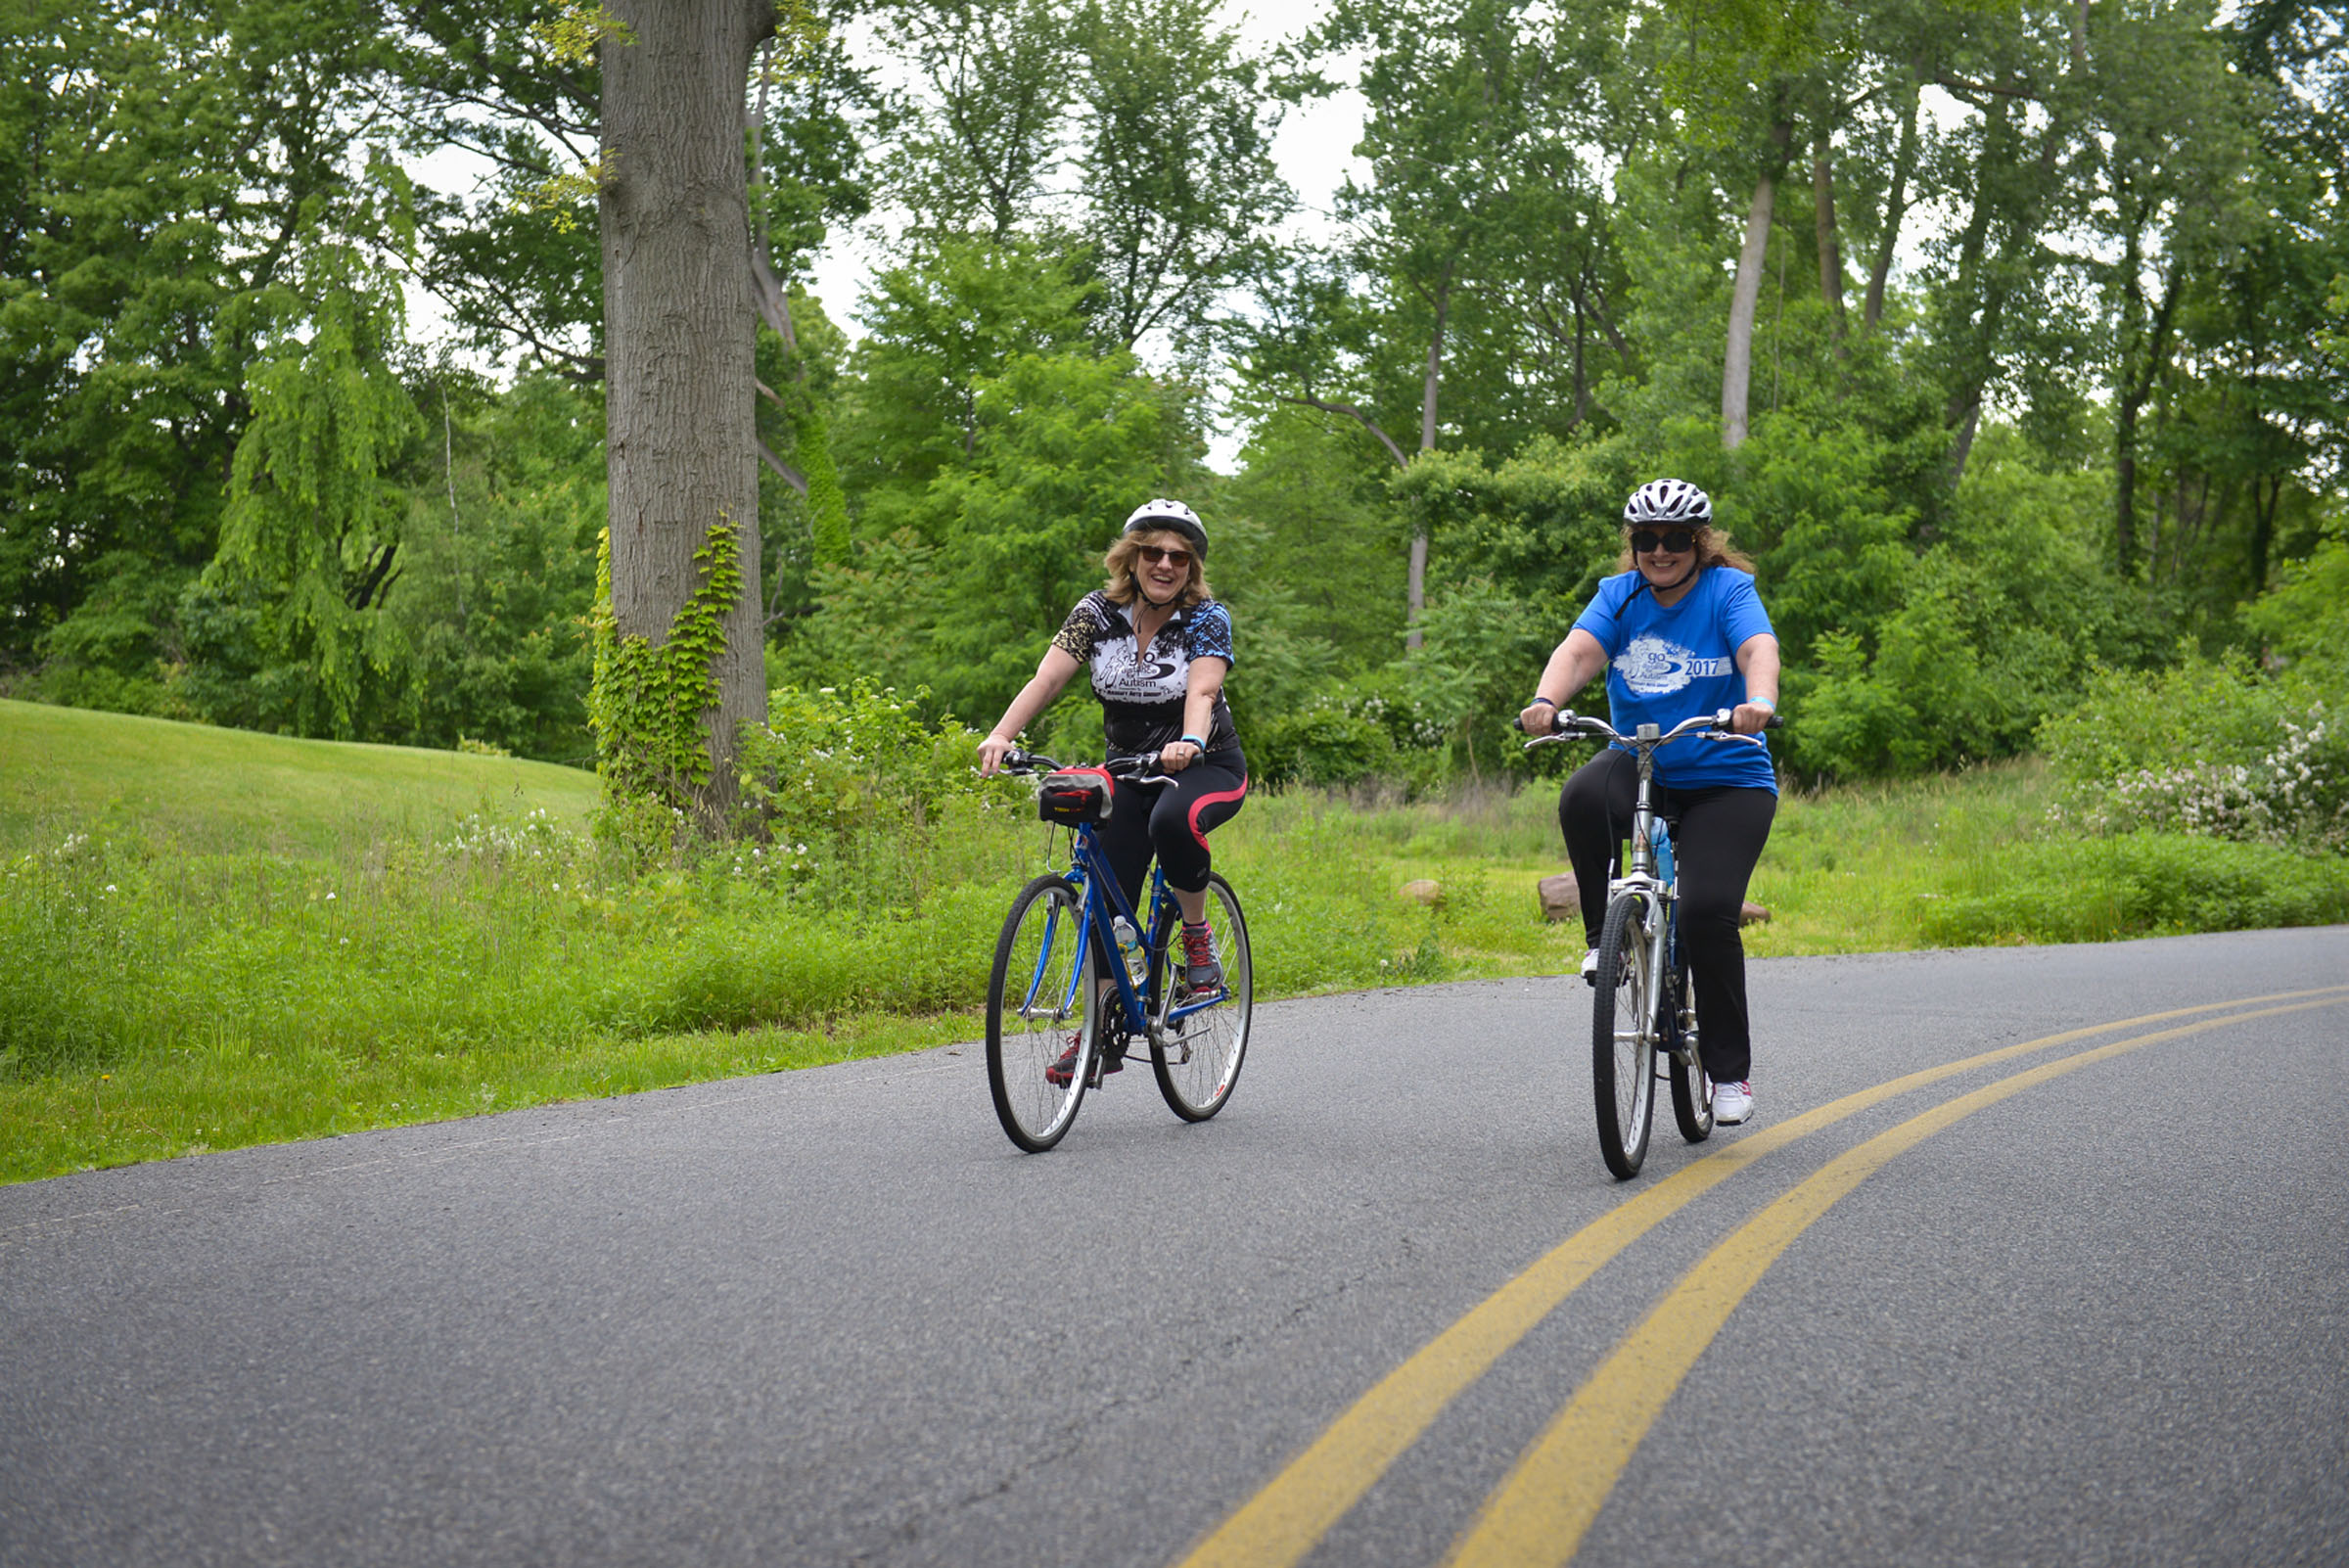 2017-06-04 GTD4A Charity Bike Ride - BCC - Paramus NJ-2271.jpg